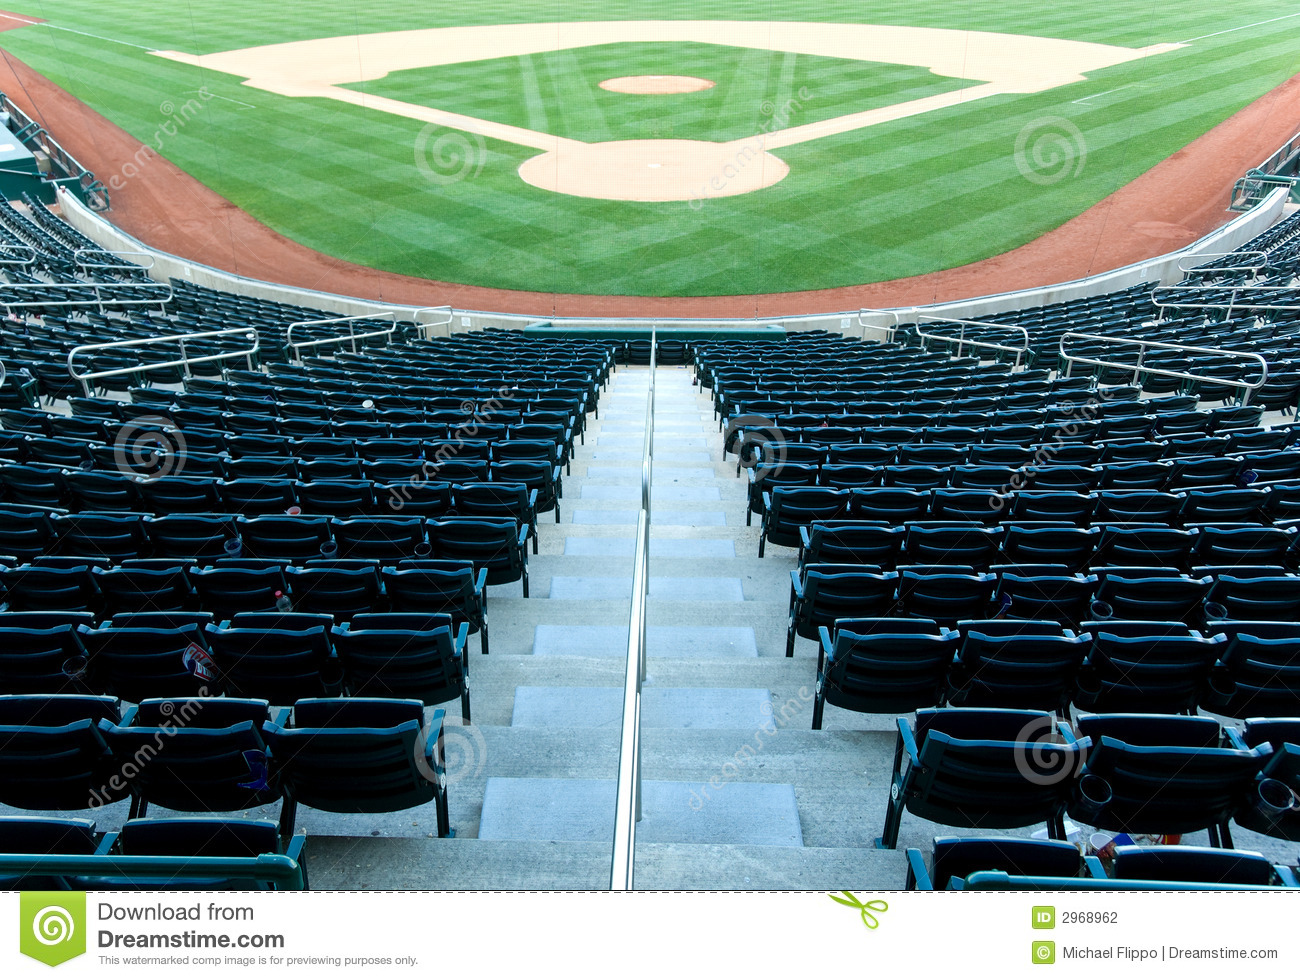 folding chair plans best potty training 2018 baseball stadium stock photography - image: 2968962